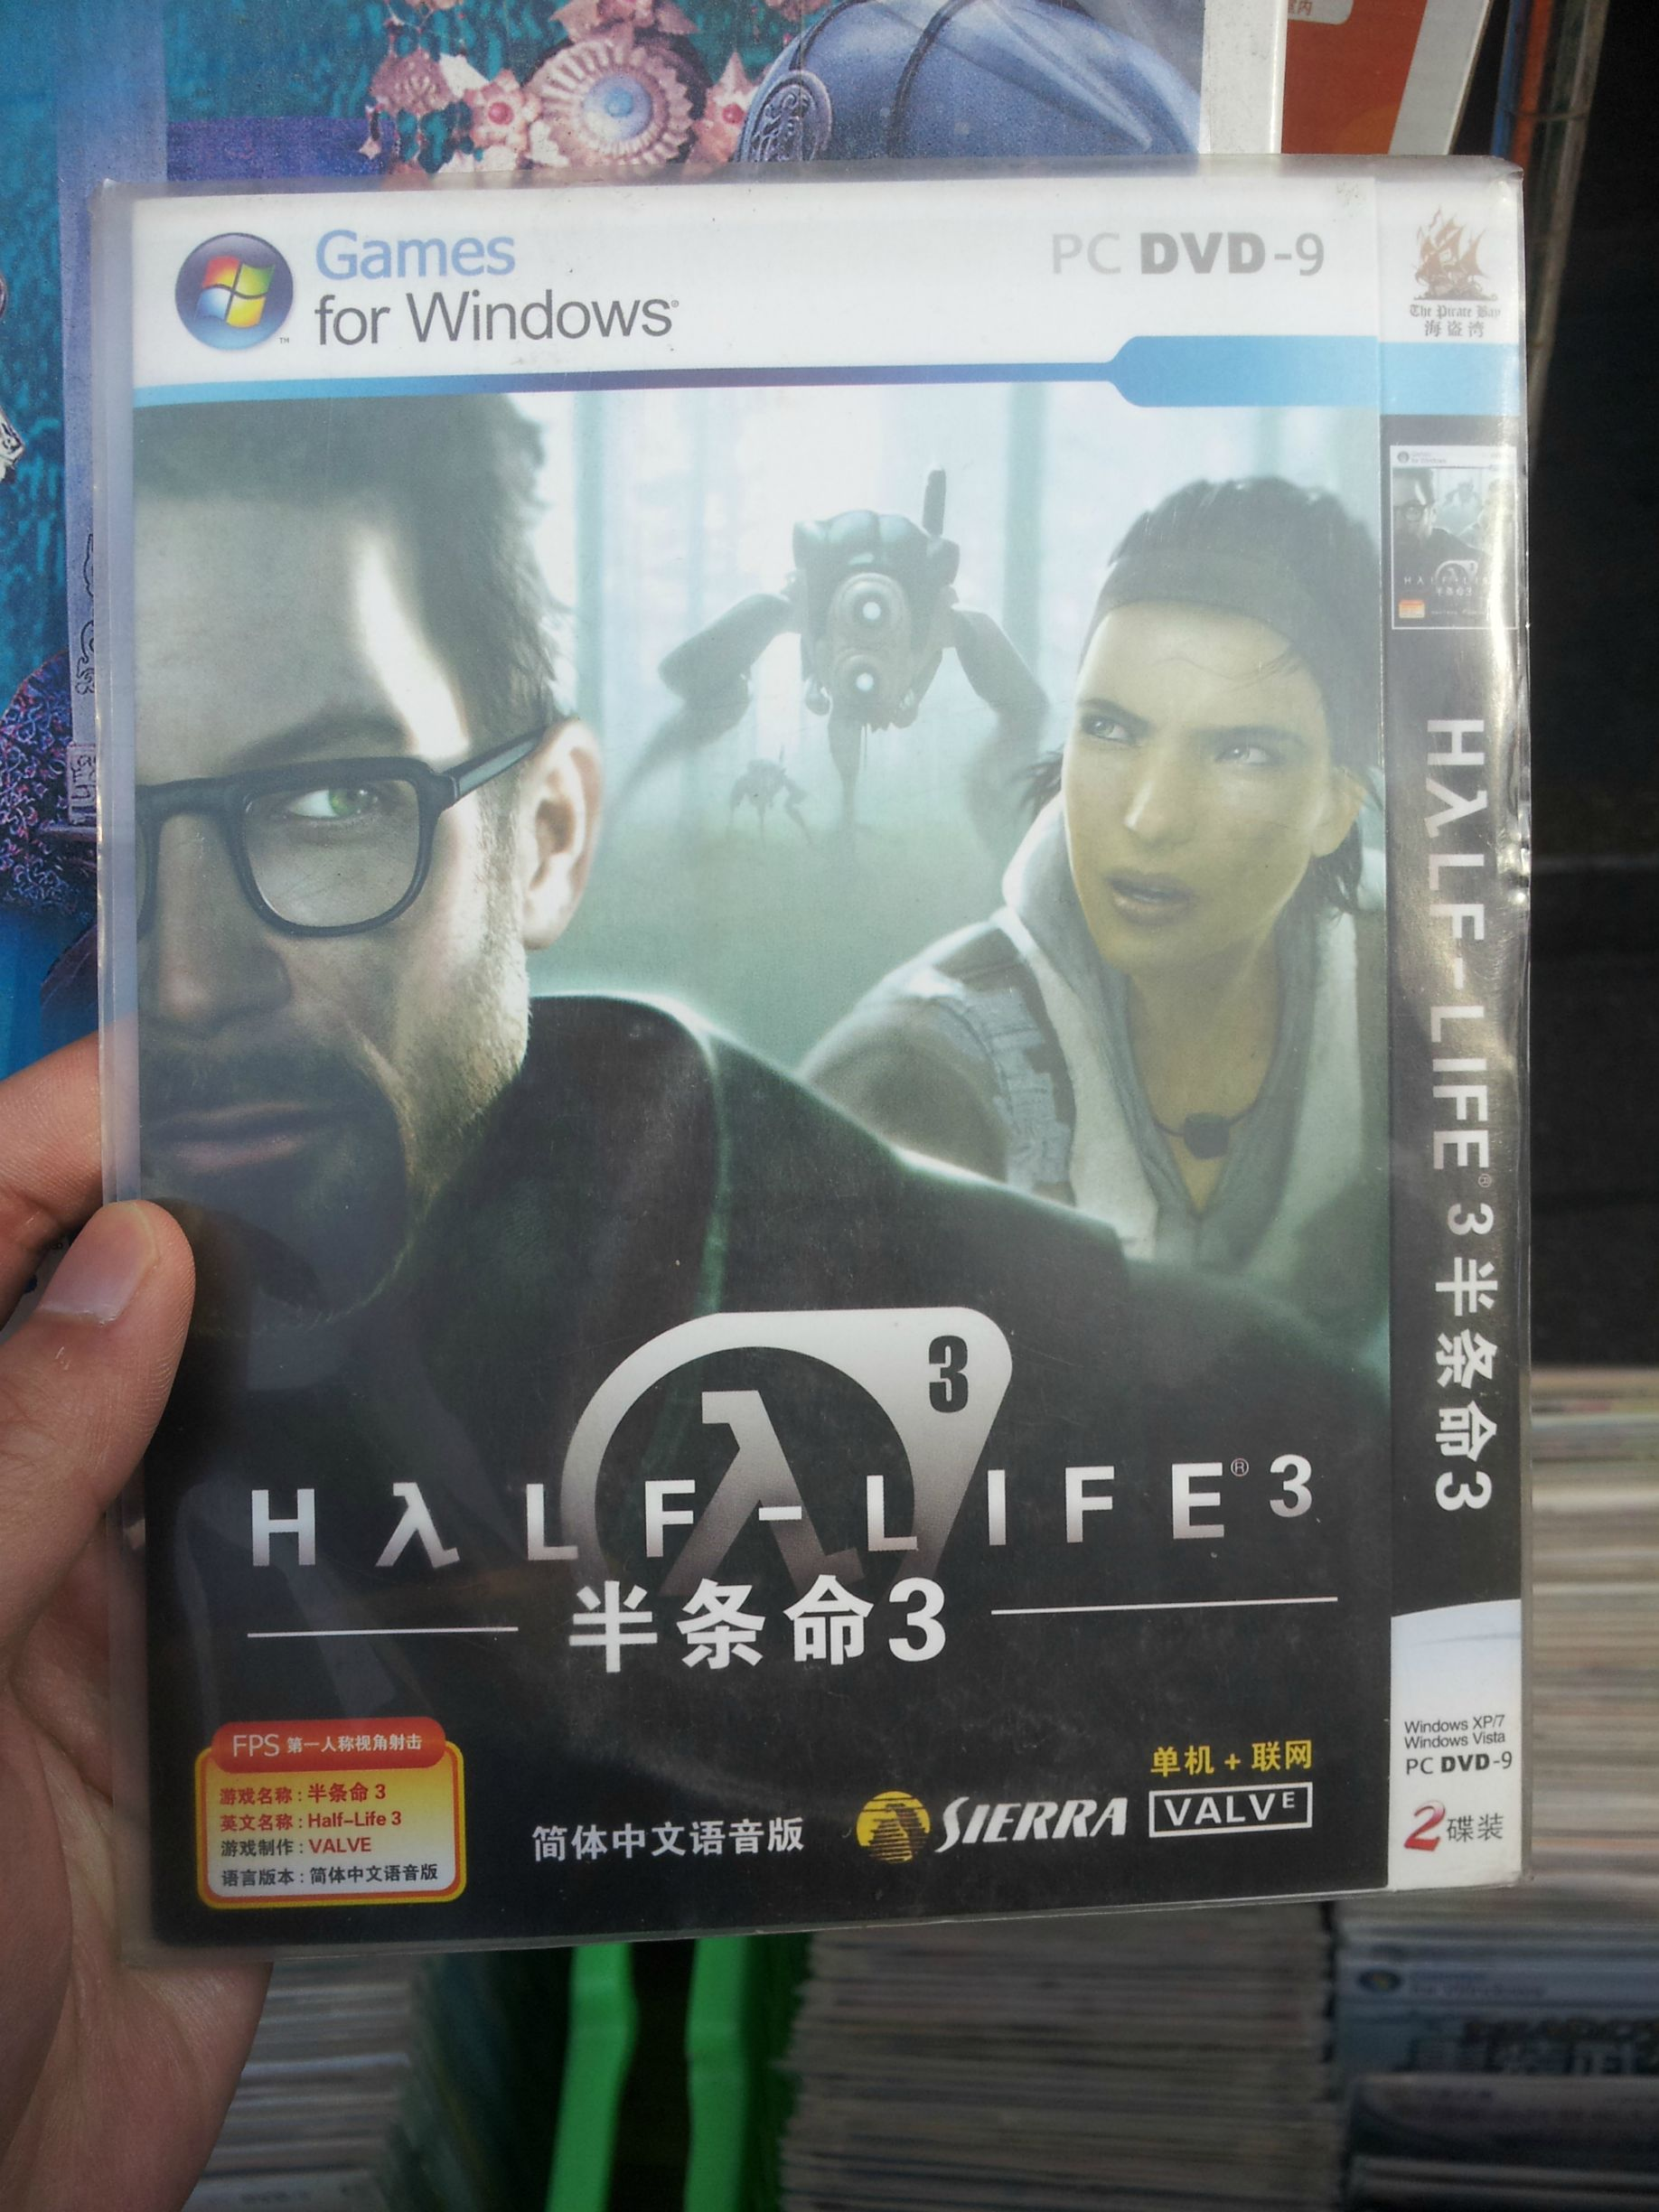 So my friend found something interesting while in China...